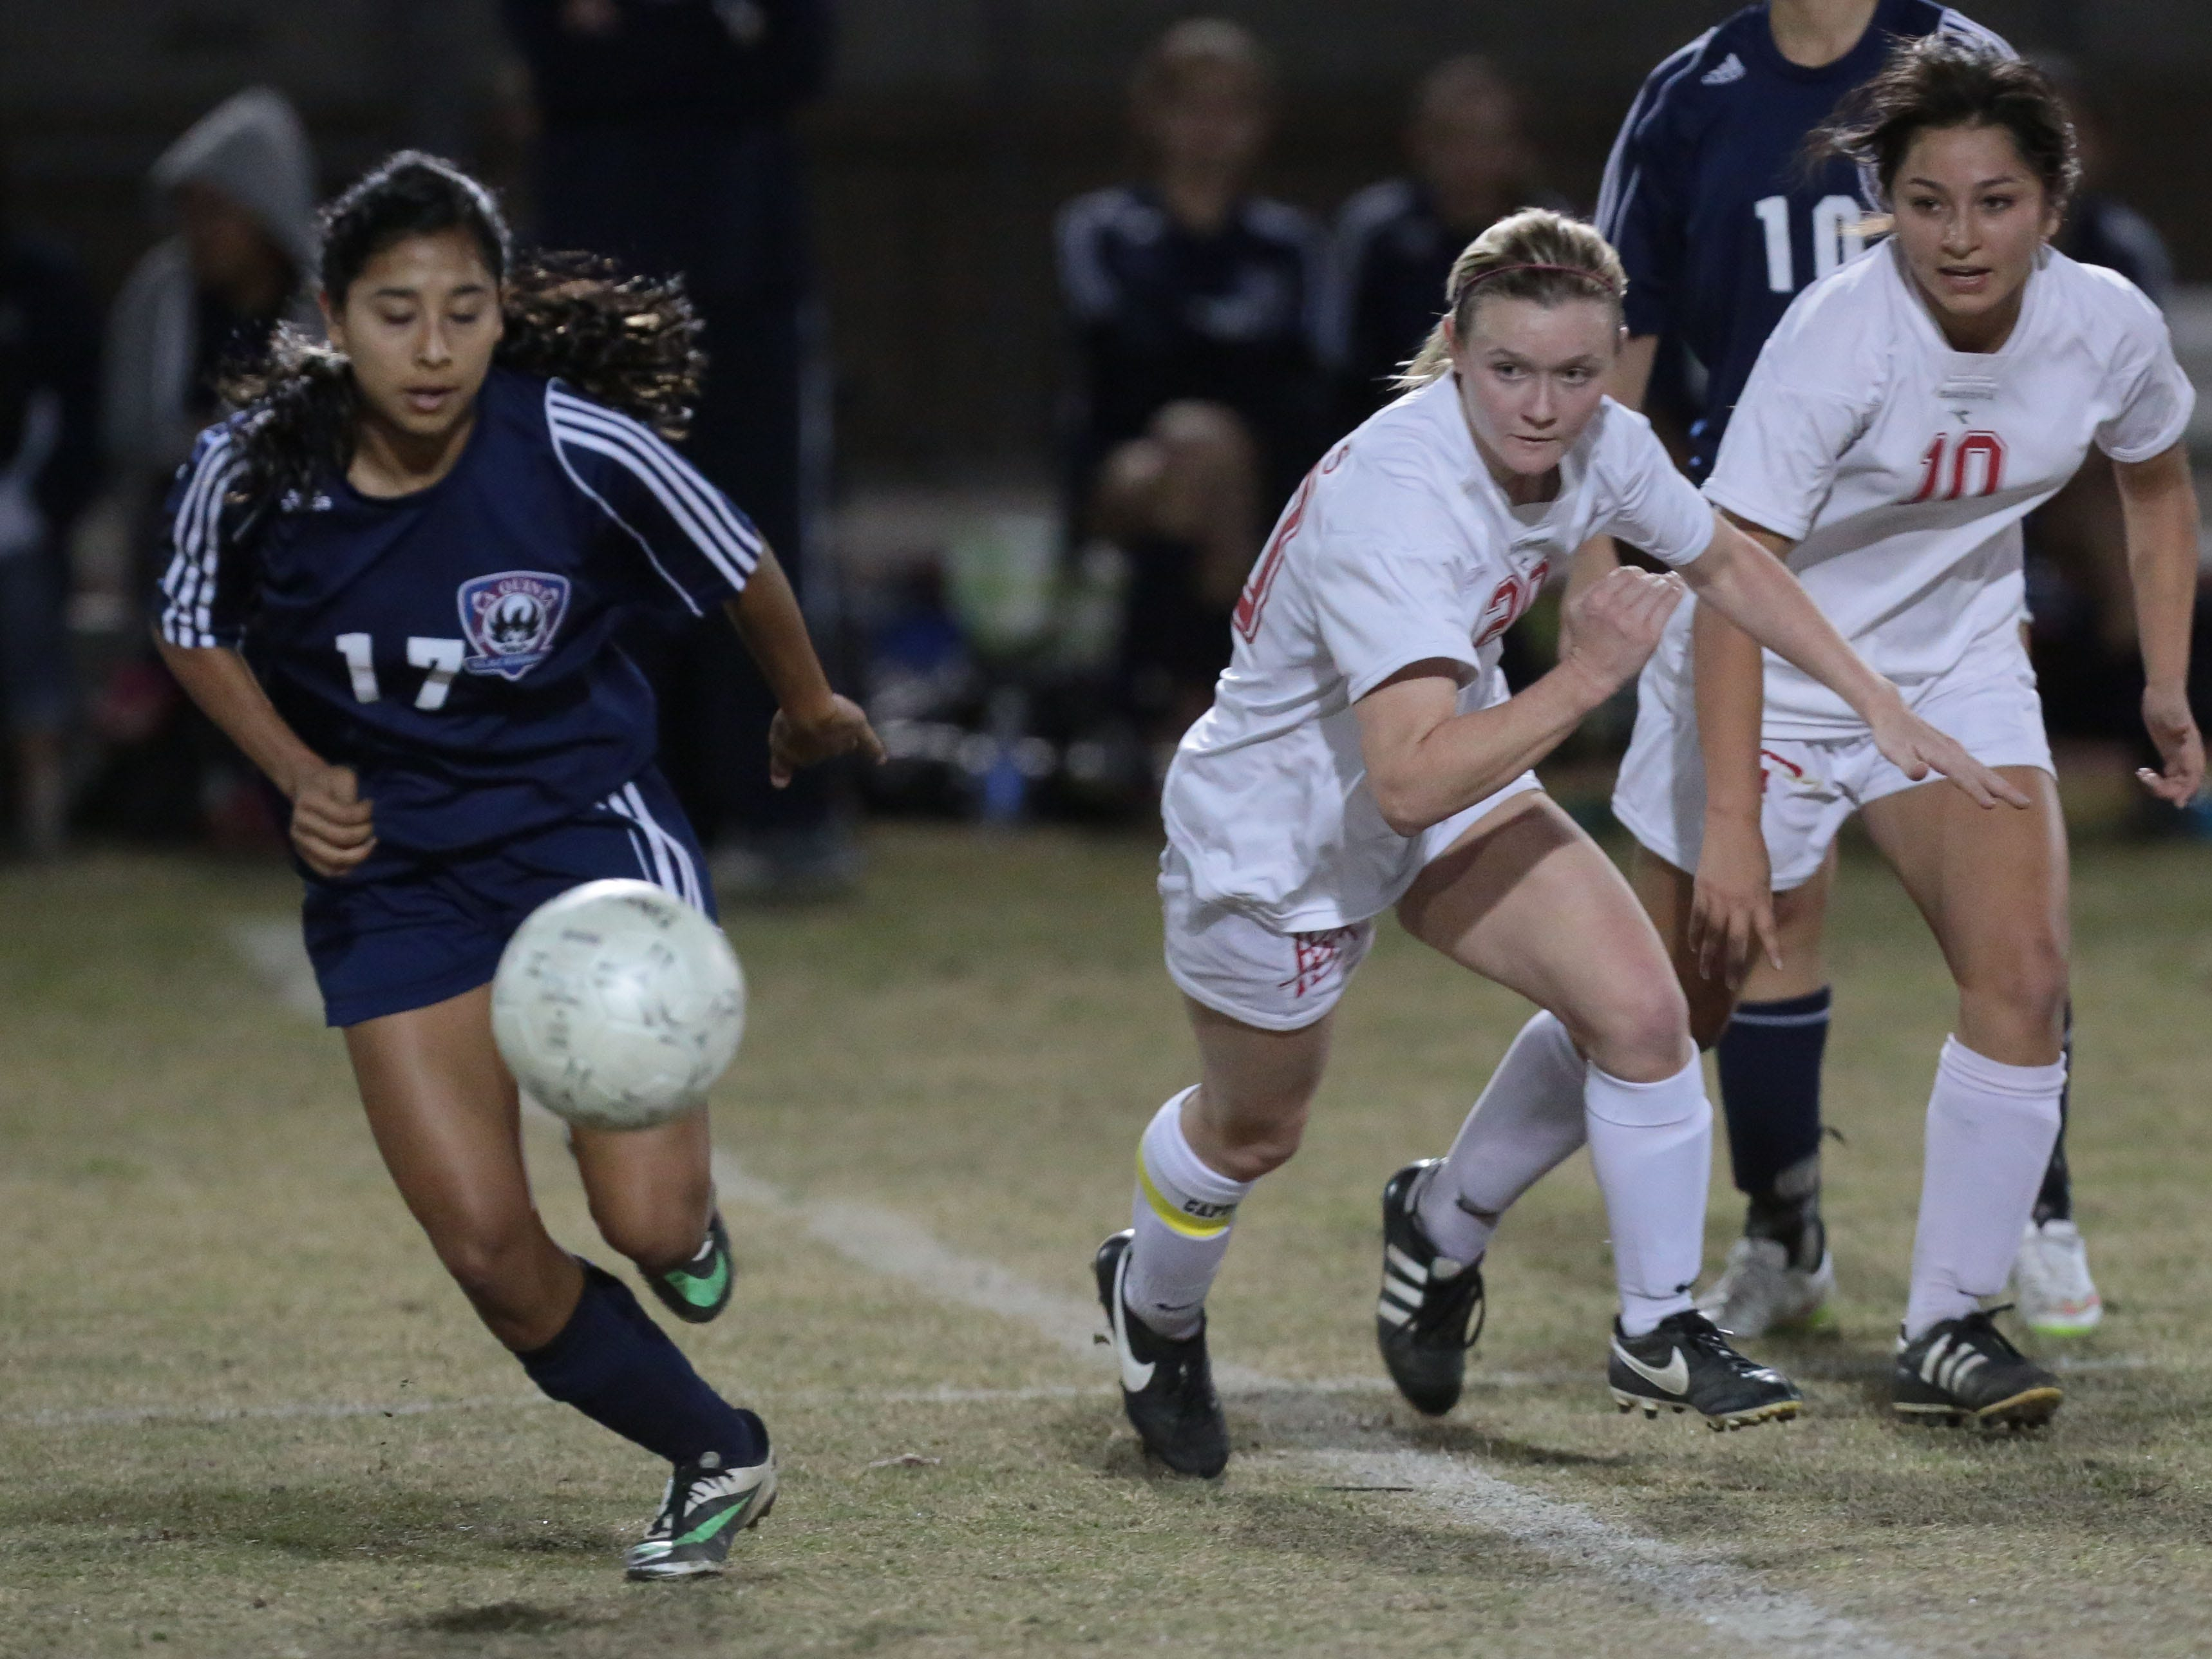 La Quinta's Marisa Rodriguez (left) controls the ball in action against Palm Desert on Wednesday. The Blackhawks won 1-0.